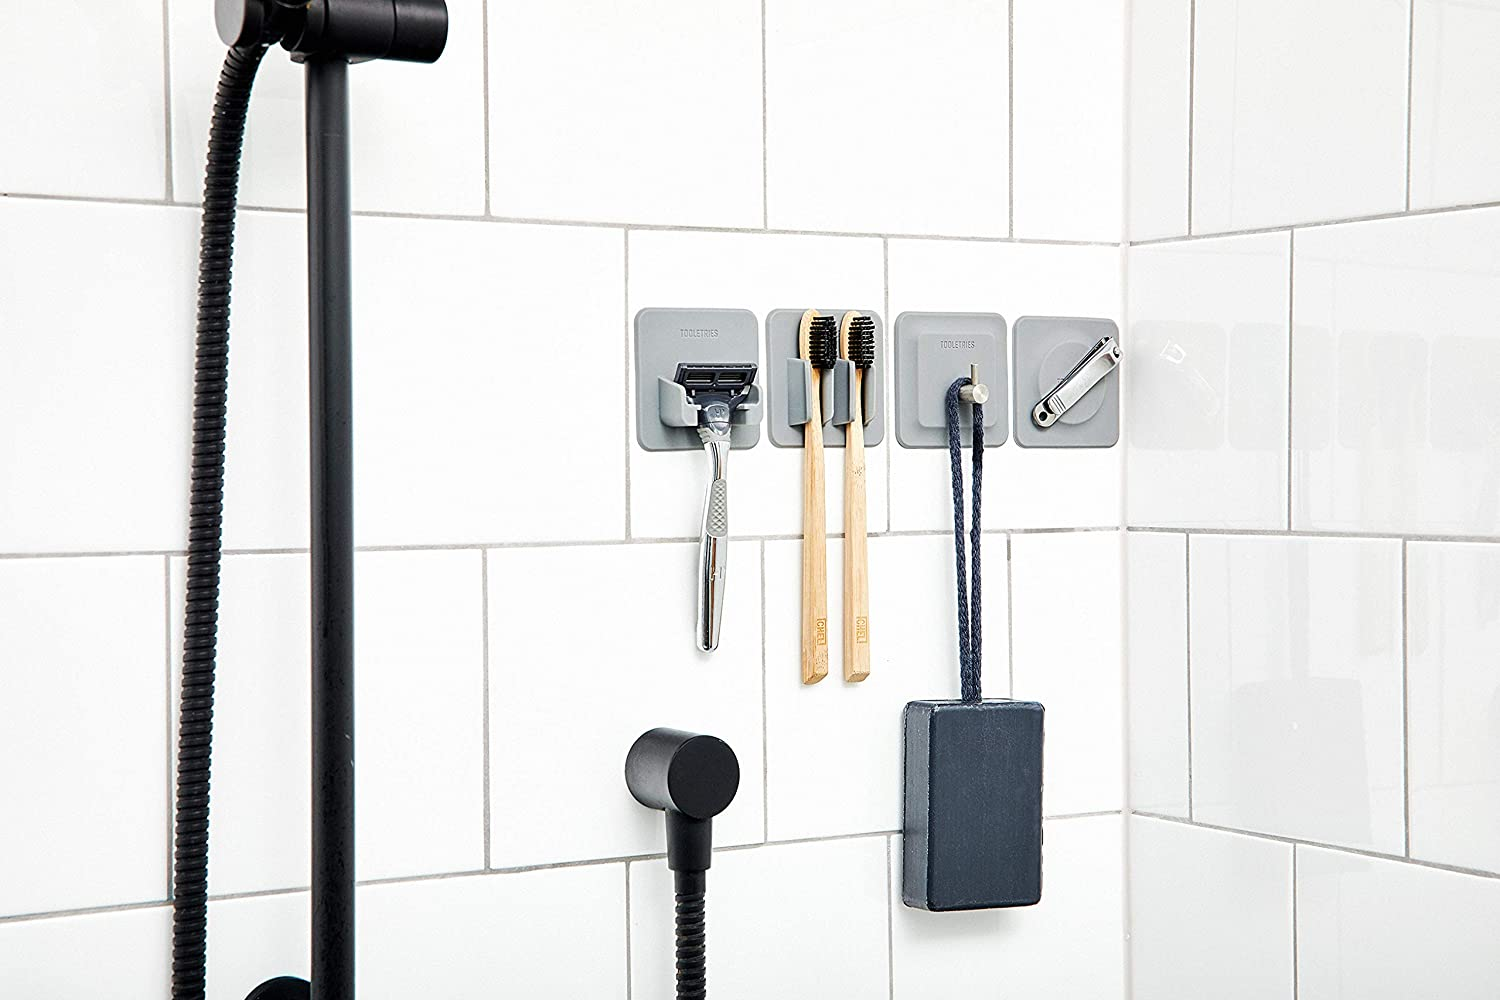 CHARCOAL Tooletries Multi-purpose Reusable Strong Grip The 4-In-1 Tile Series